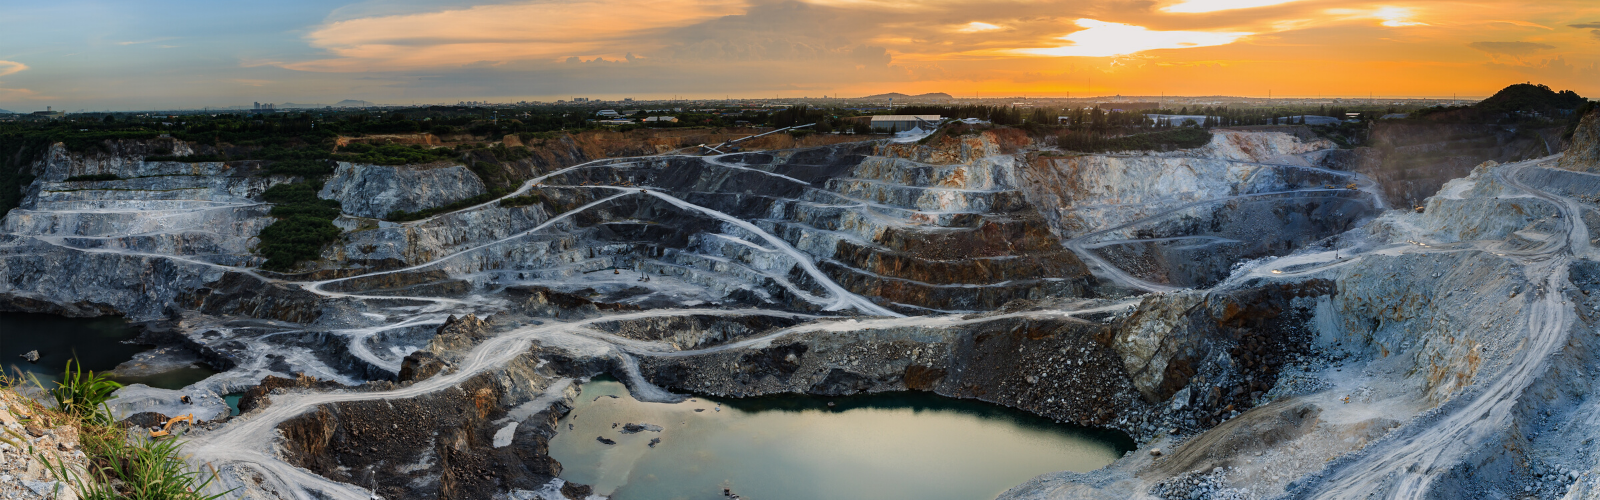 Ariel view of a Cobalt or Mica mine nestled in the mountains at sunset.